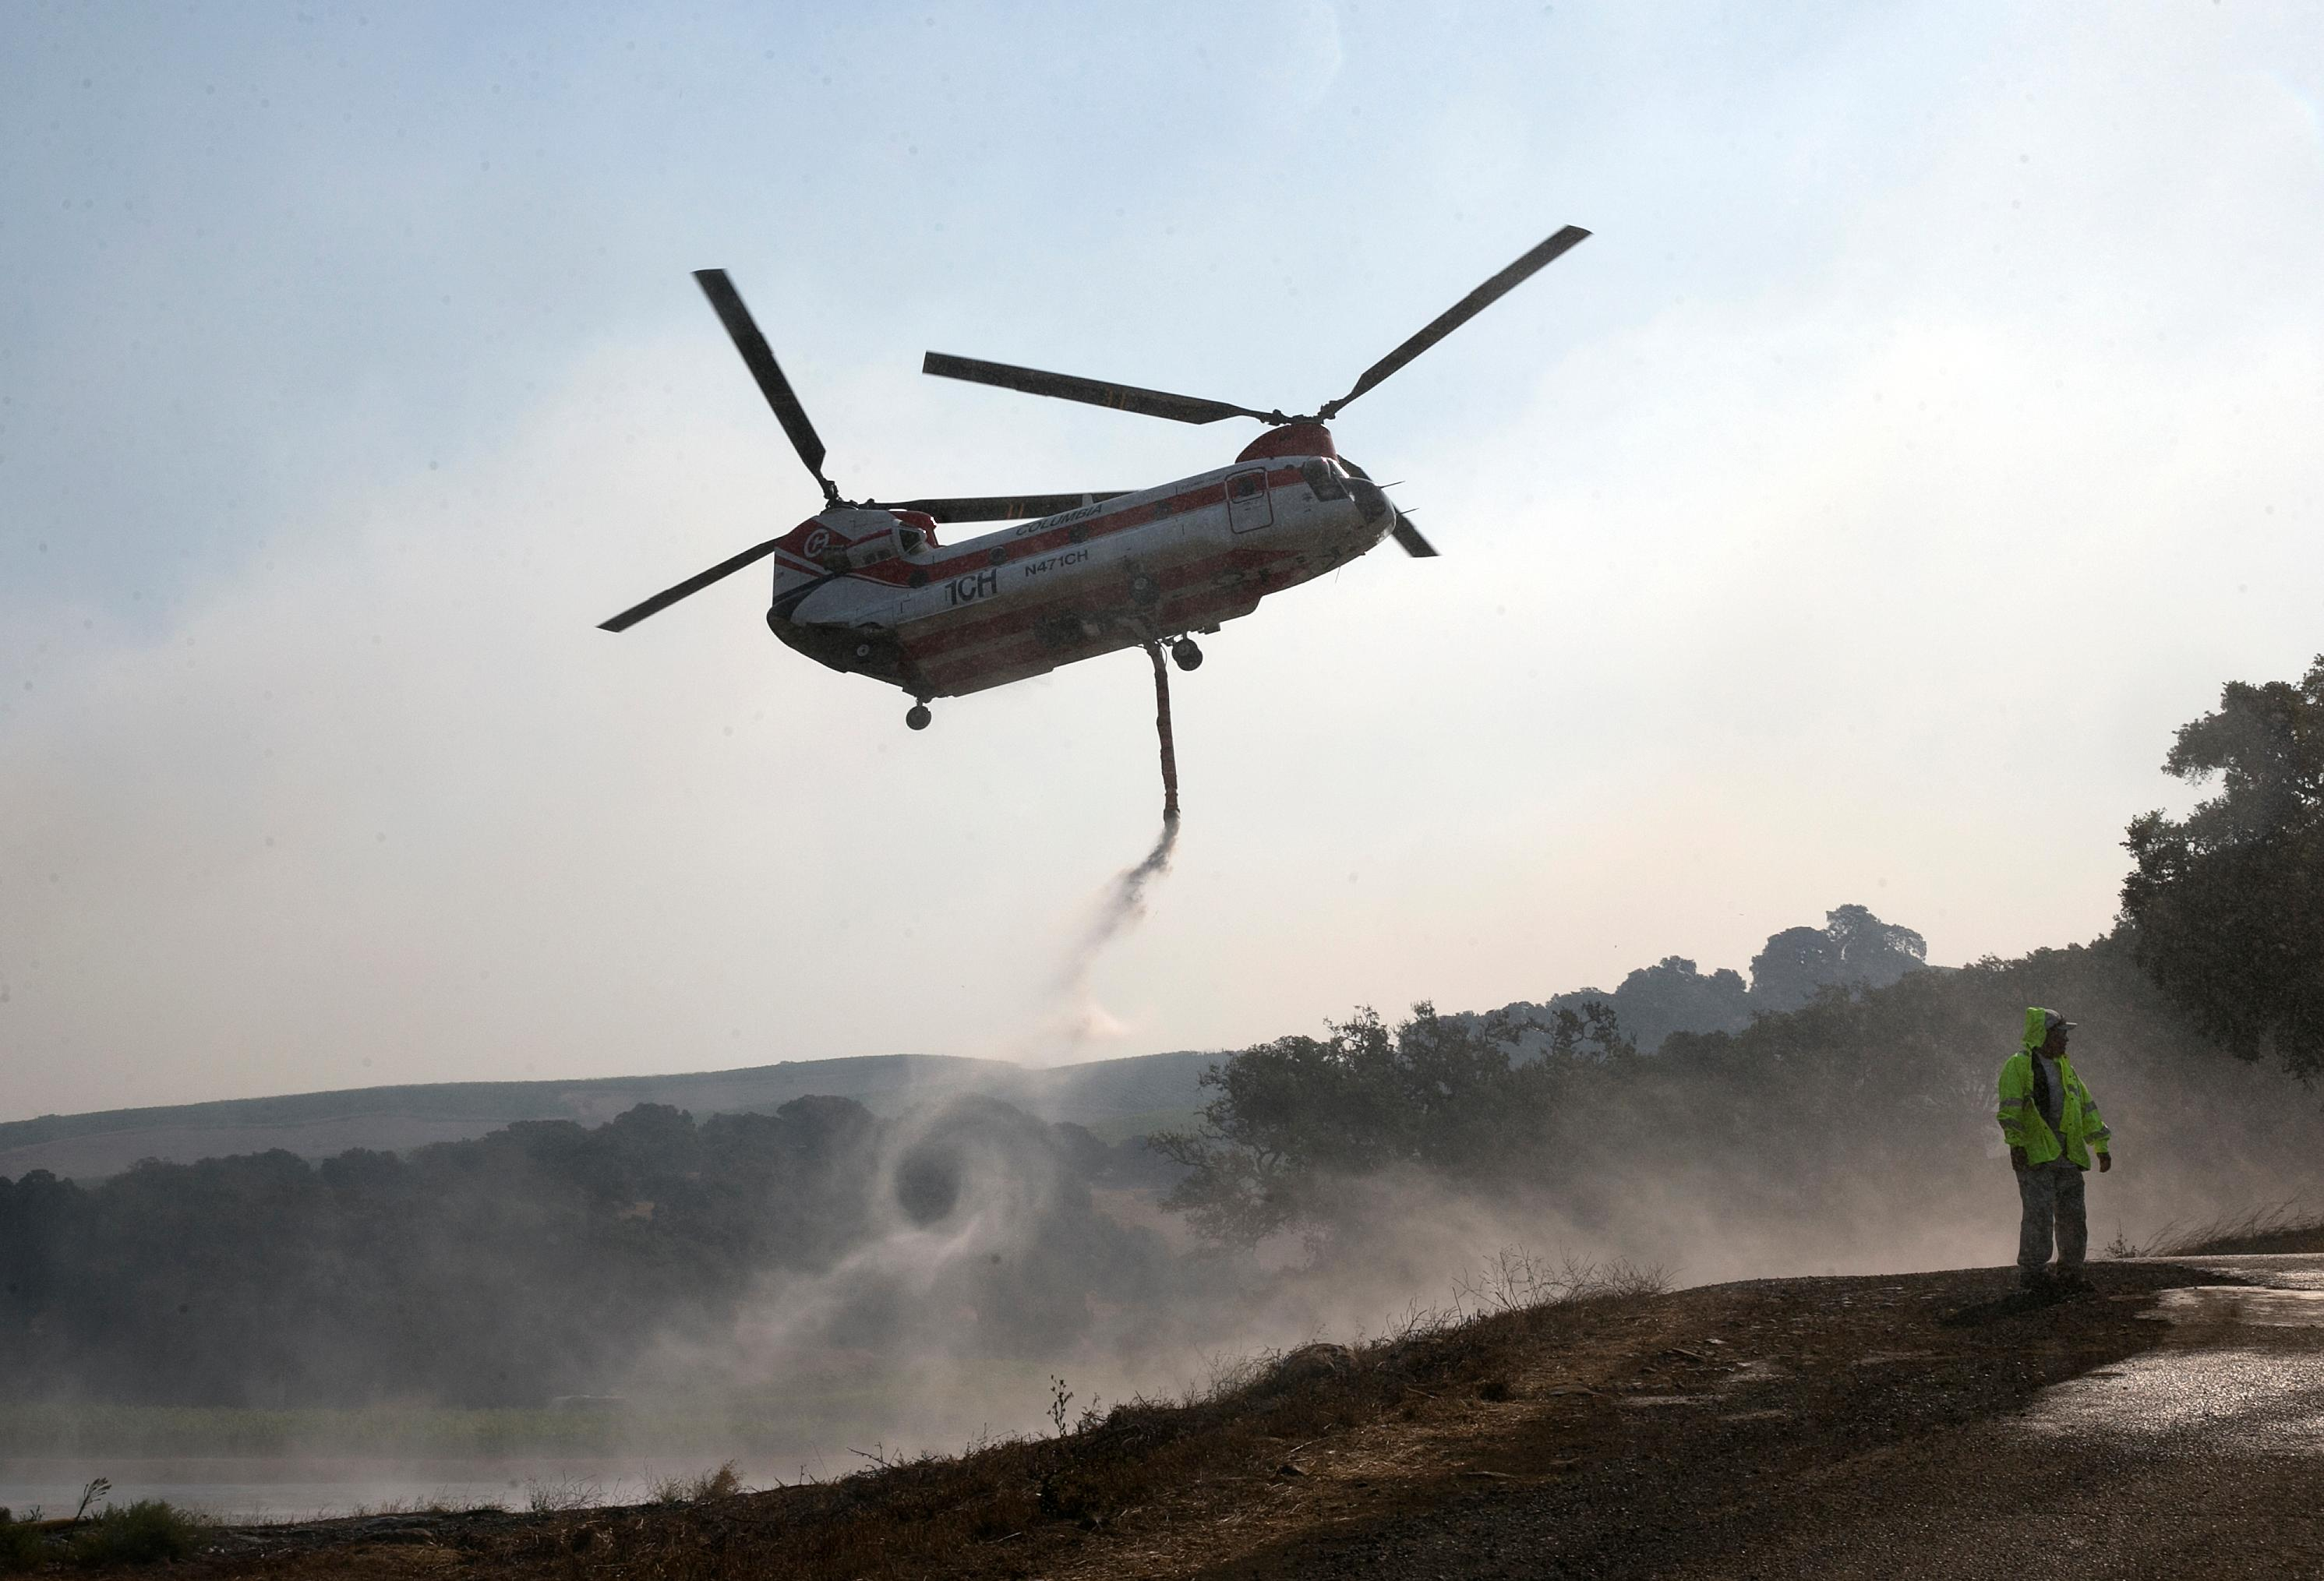 A helicopter draws water from a pond to help put out a fire near Napa, Calif., on Thursday, Oct. 12, 2017.  Gusting winds and dry air forecast for Thursday could drive the next wave of devastating wildfires.  (AP Photo/Rich Pedroncelli)